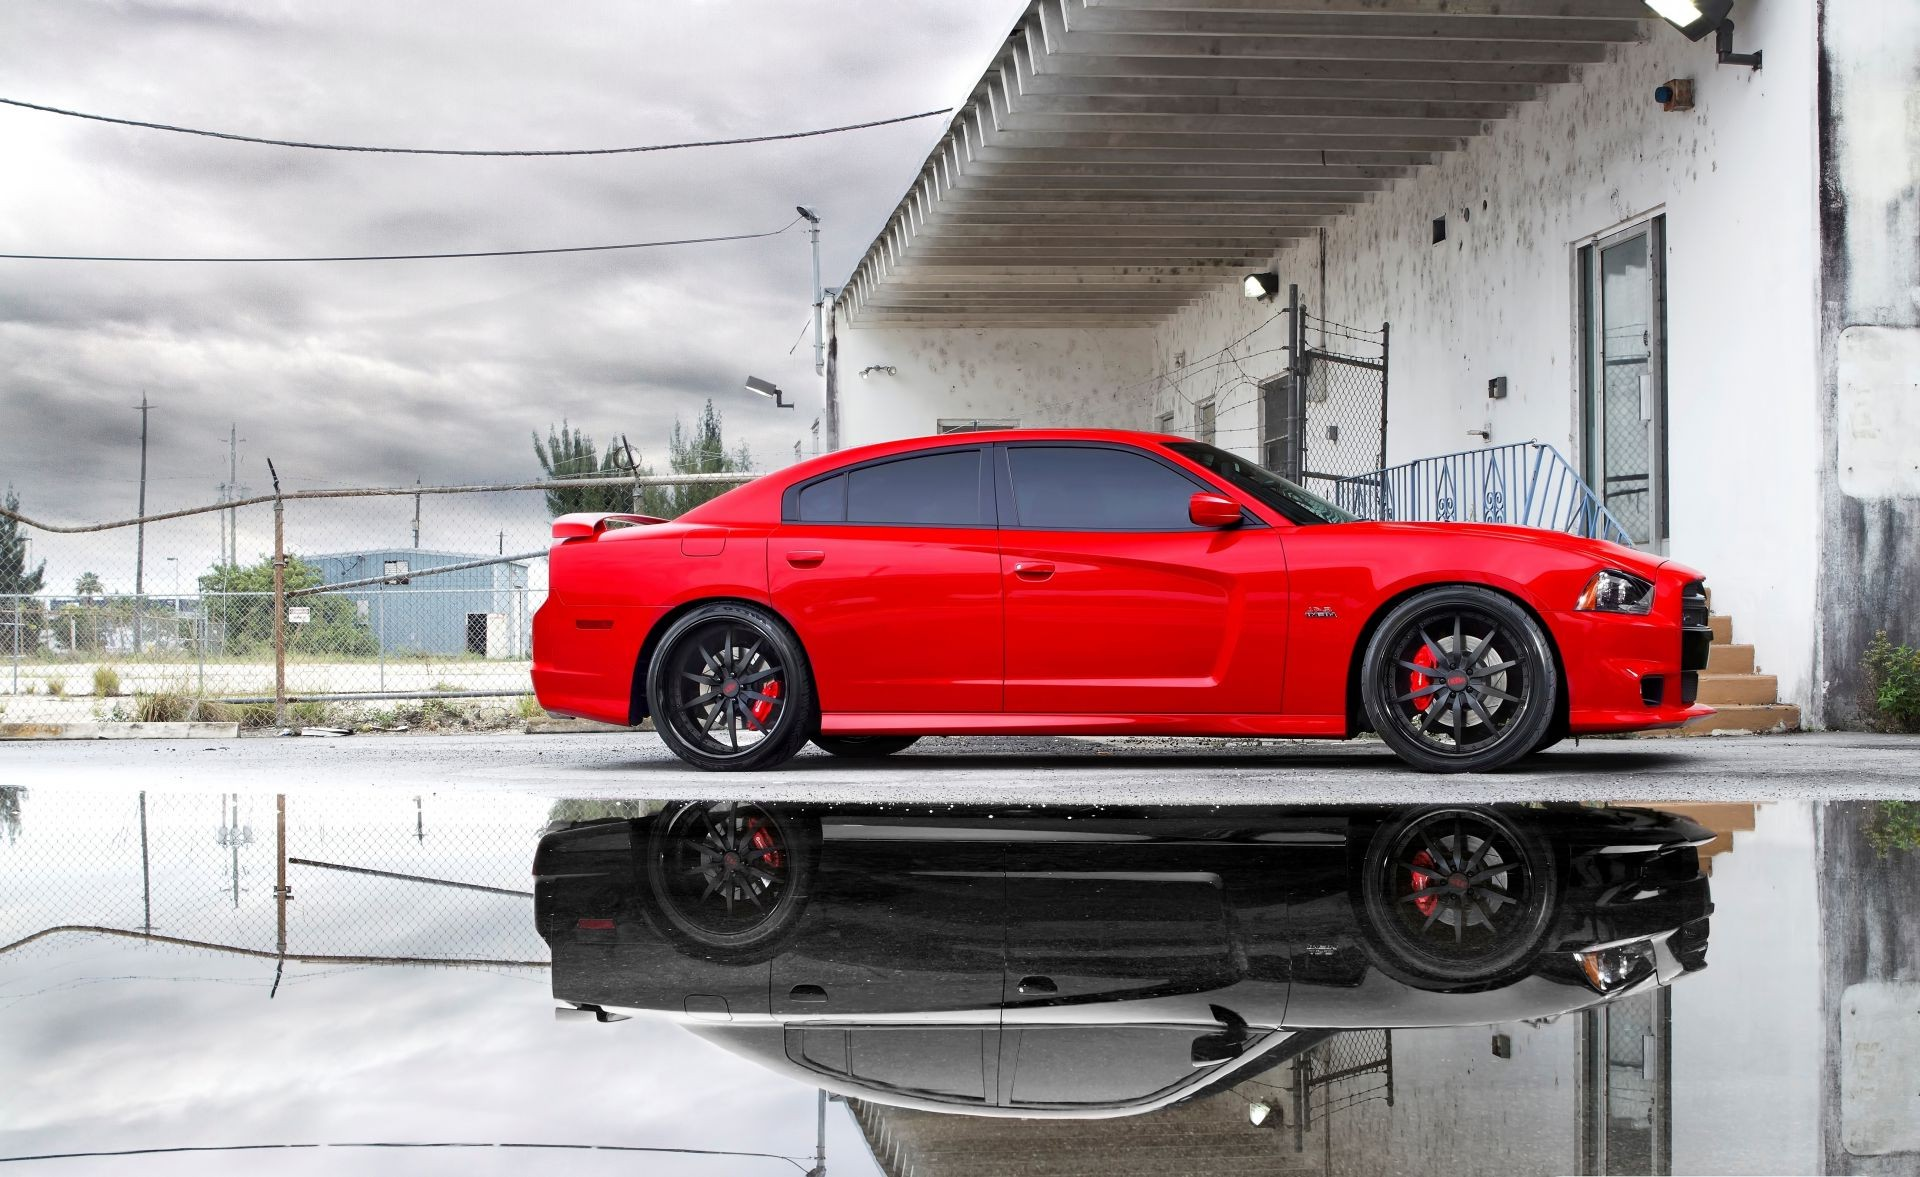 miami puddle srt8 red reflection charger додж dodge